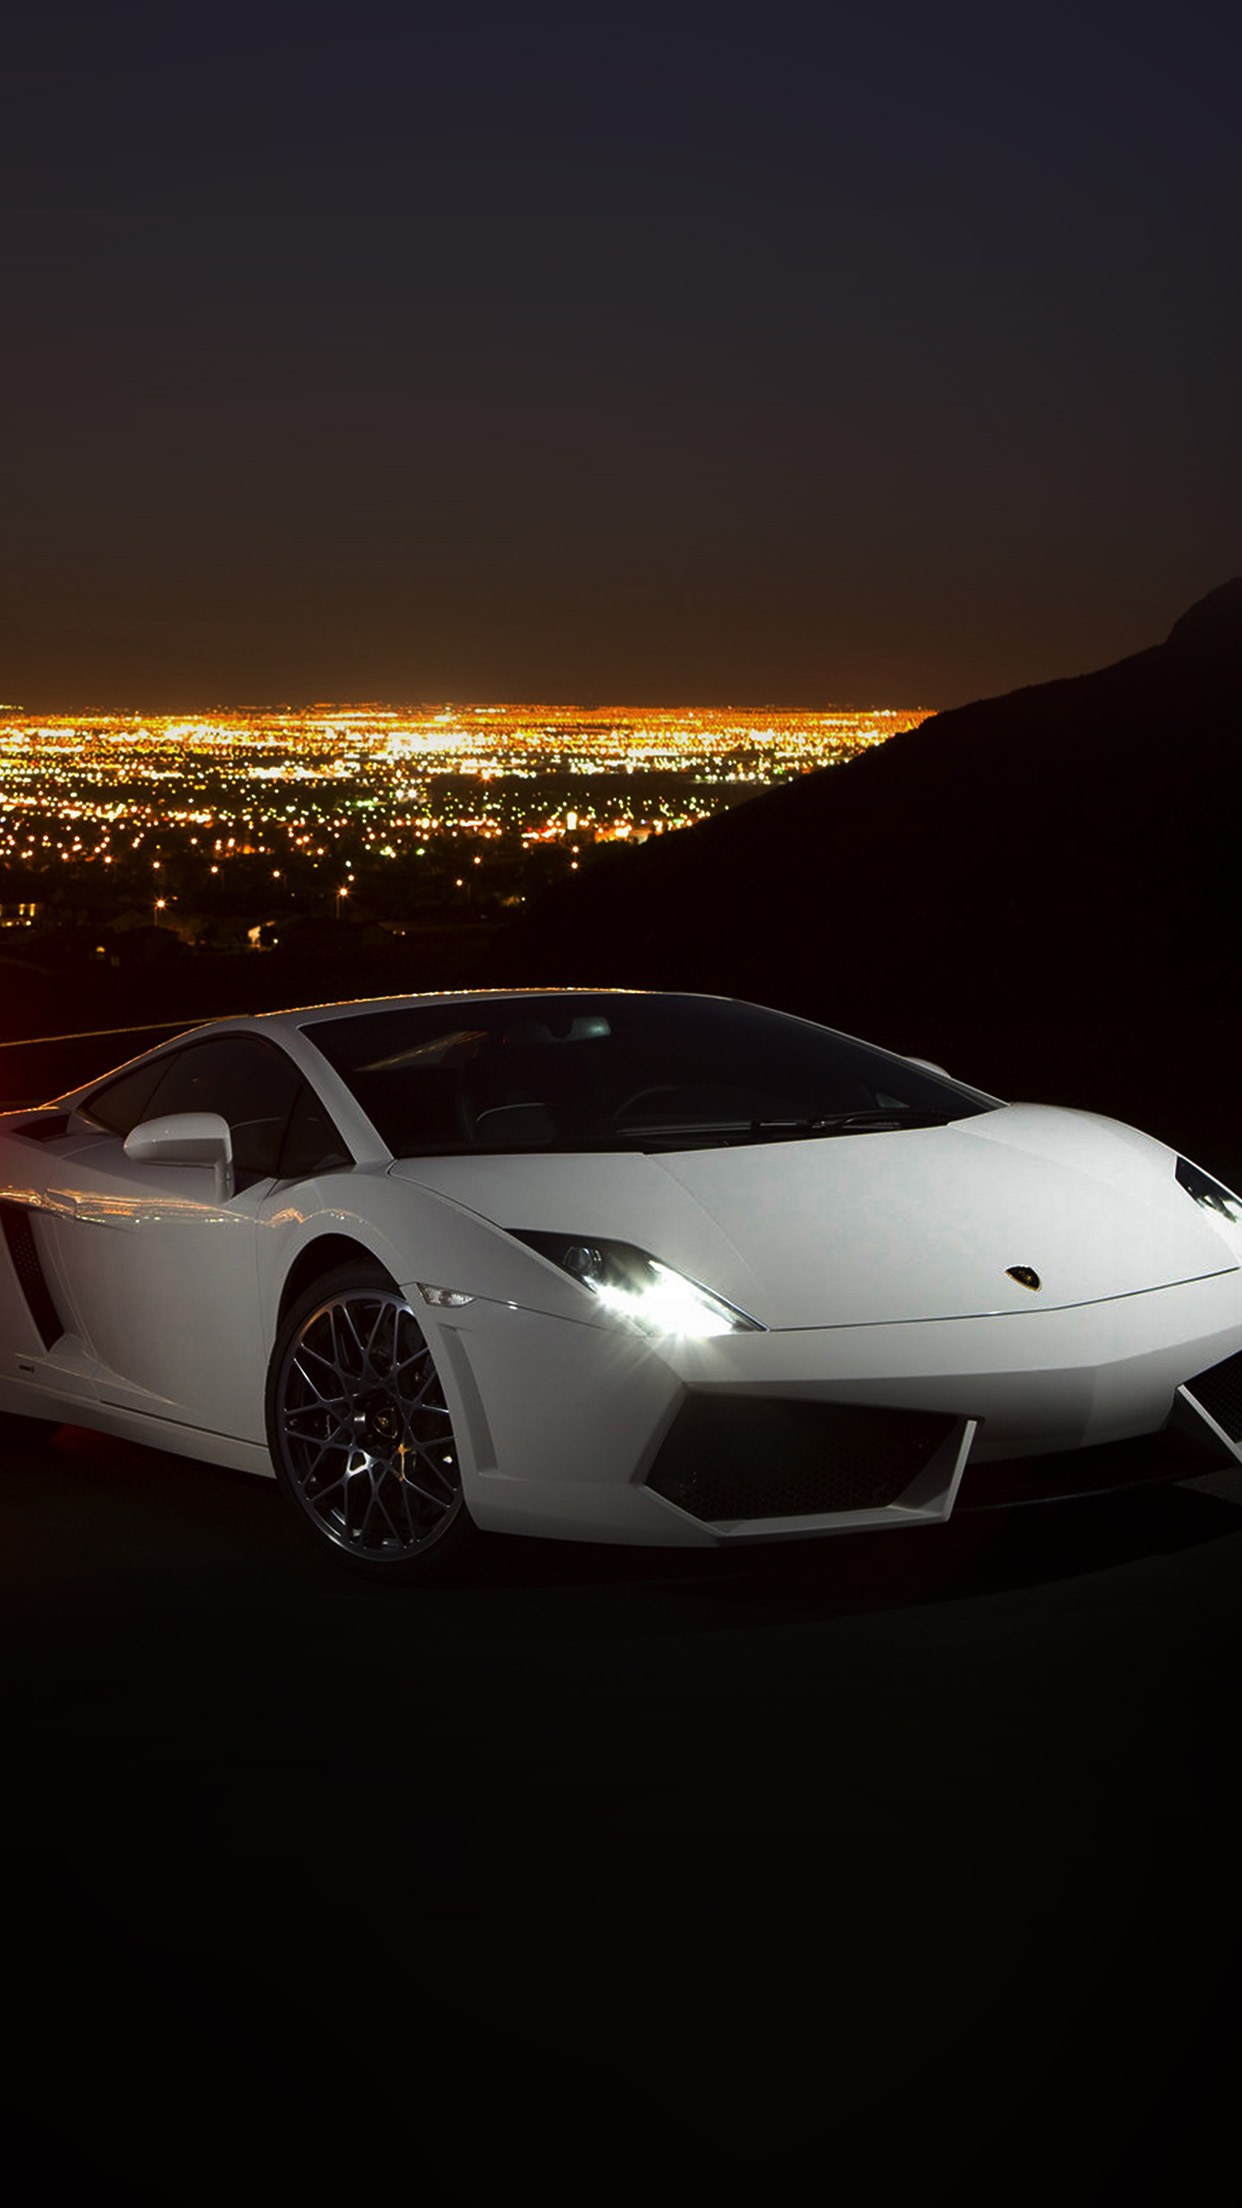 We may earn a commissio. Car Lamborghini Art Dark Night Drive Android Wallpaper Android Hd Wallpapers